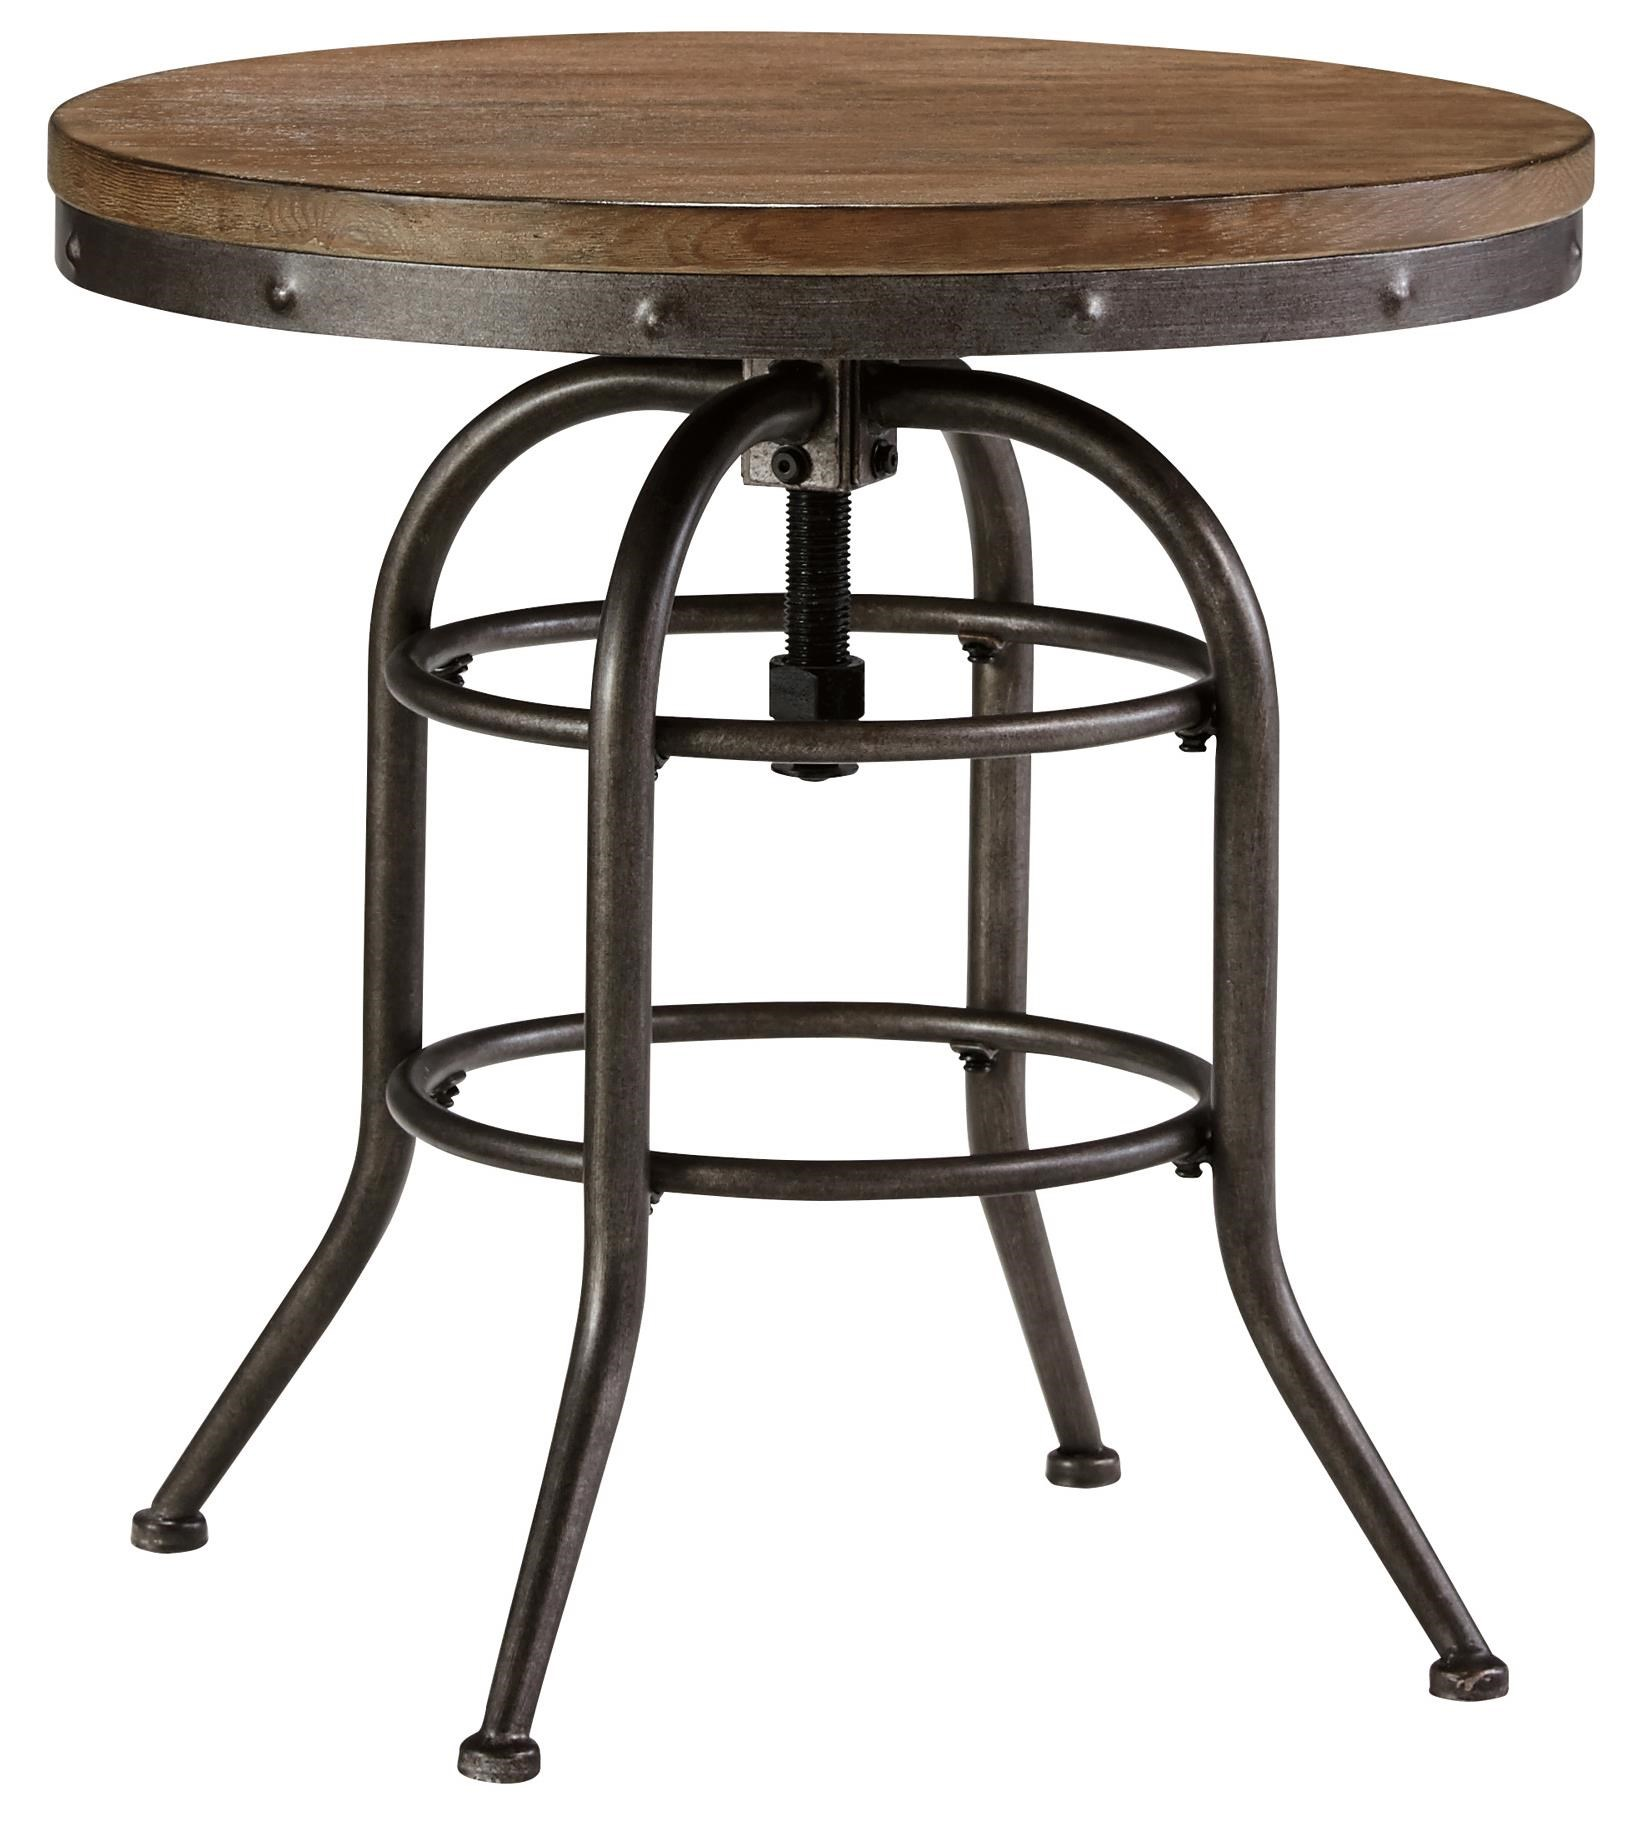 Exceptional Signature Design By Ashley Vennilux Industrial Style Round End Table With  Adjustable Height